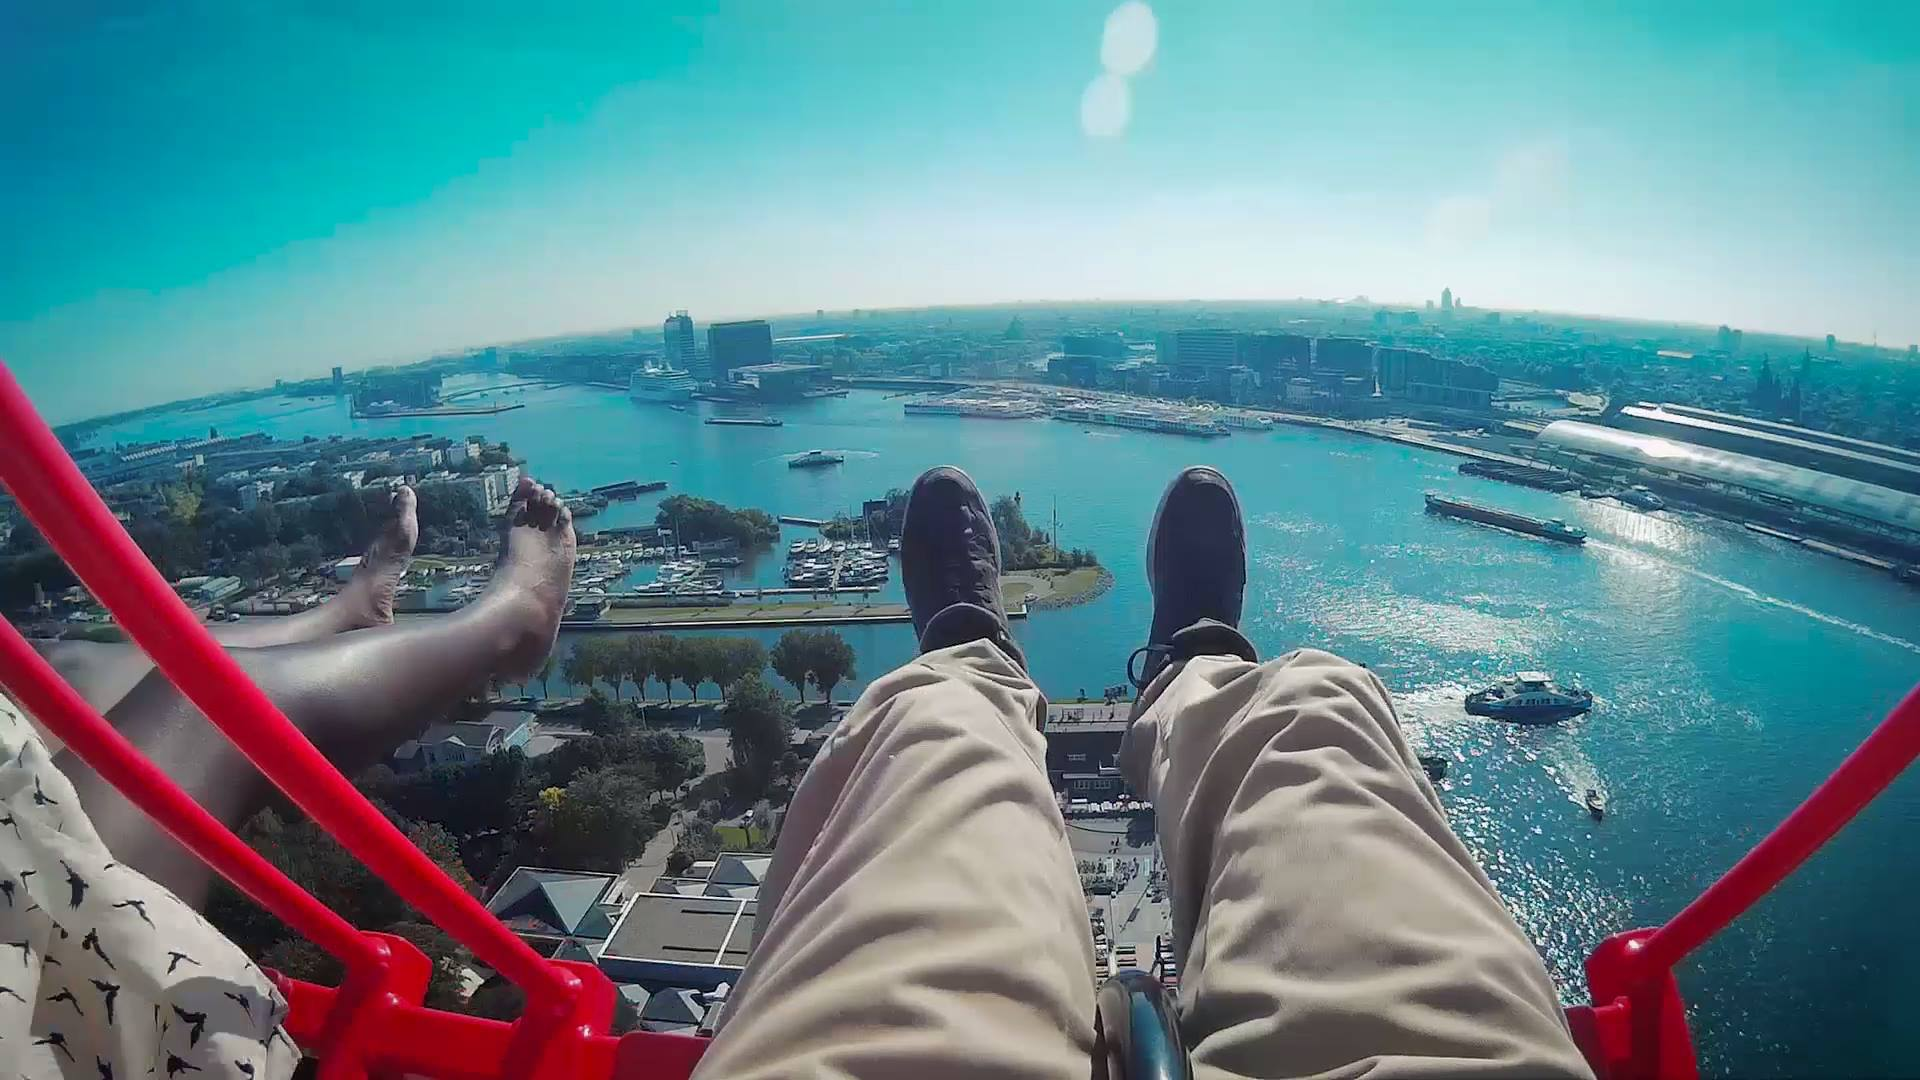 Nath and Séb on the A'Dam Lookout swing - Amsterdam, Netherlands